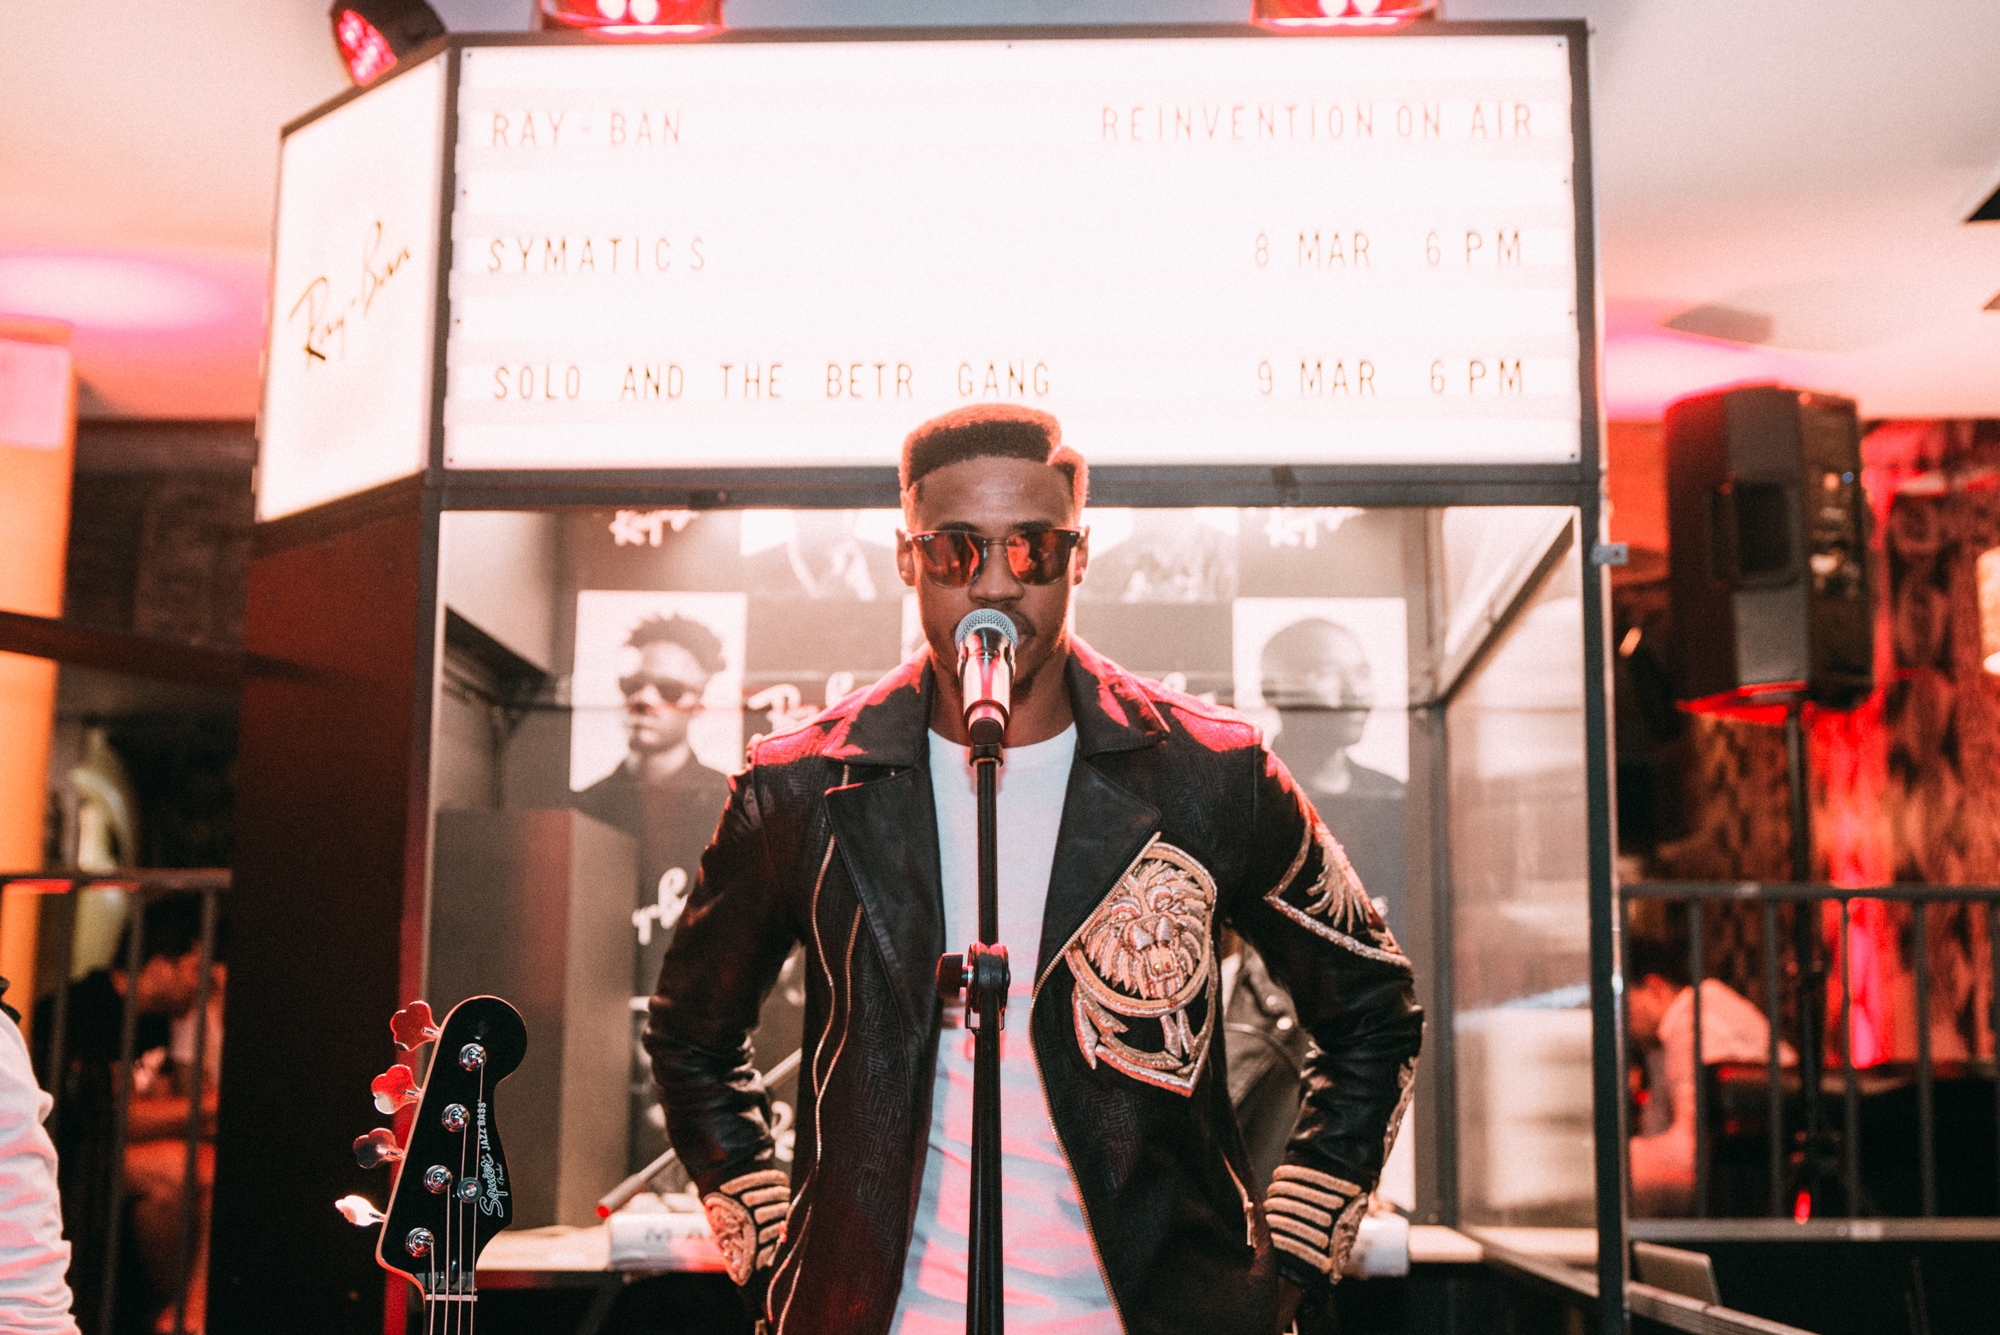 Ray-Ban Reinvention On Air | Event Round-Up Ray Ban Reinvention On Air Solo and the betr gang 14